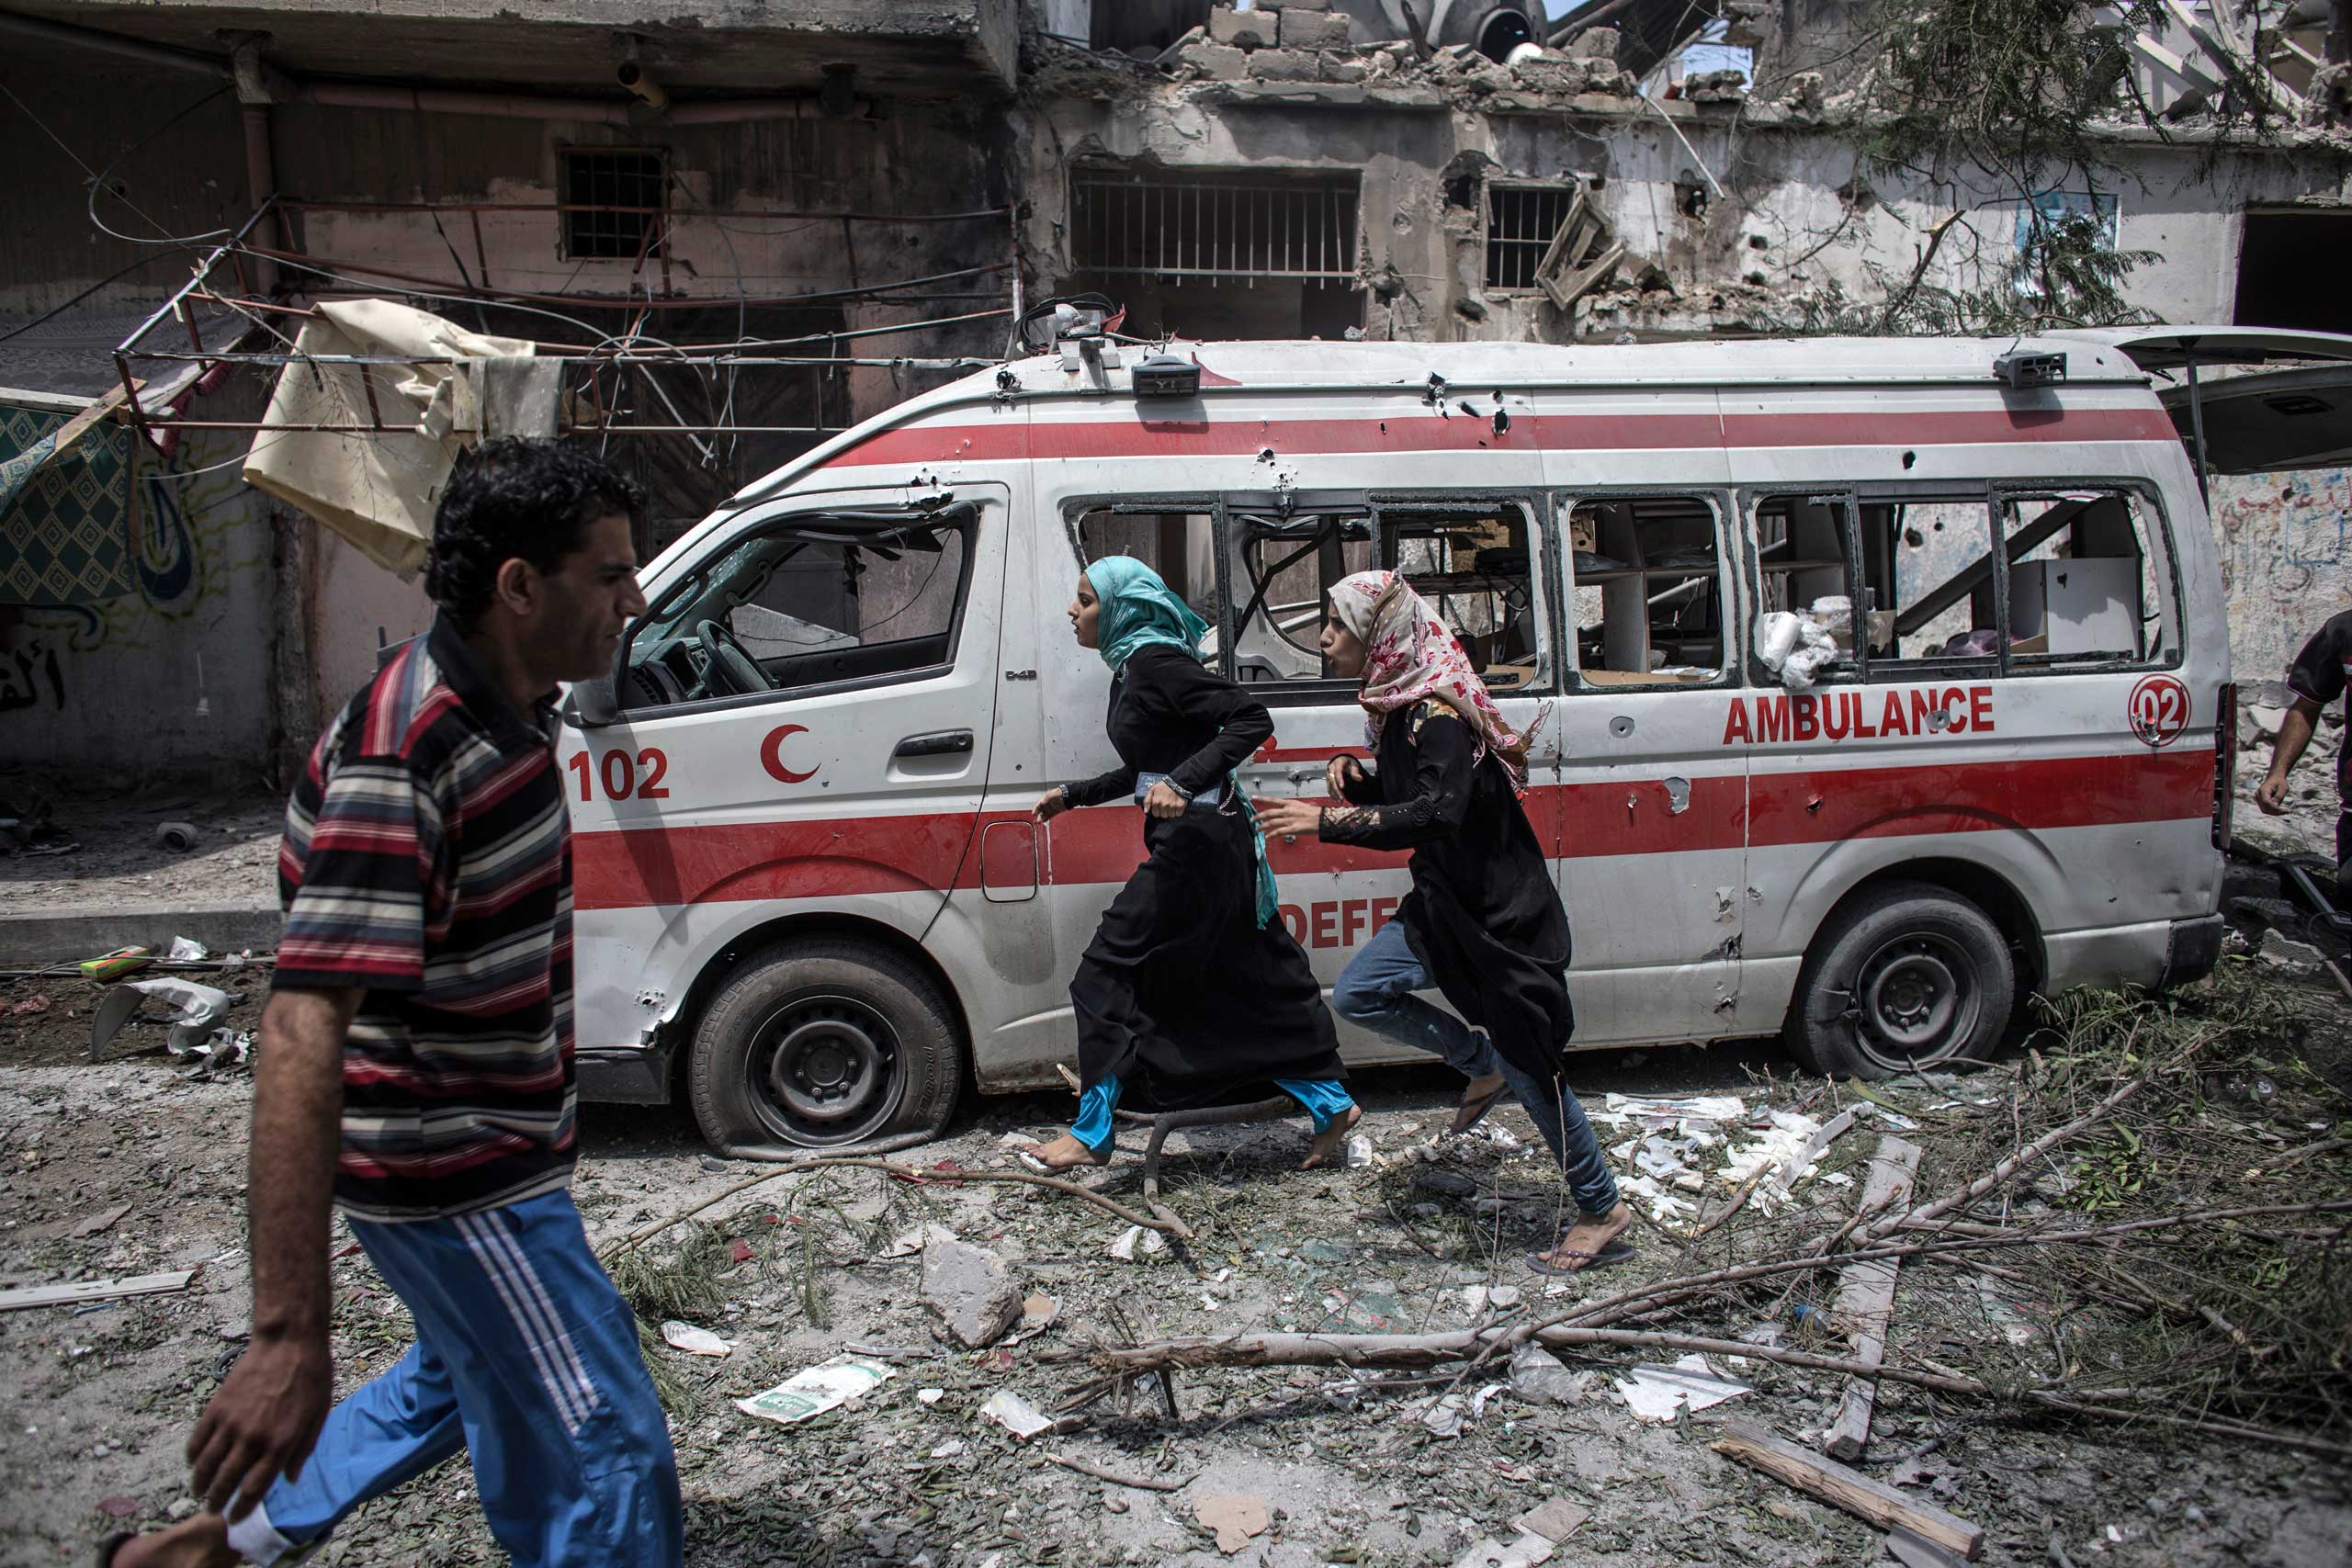 Two Palestinian girls run past a destroyed ambulance as they flee during a brief humanitarian cease-fire requested by local rescue forces to retrieve dead and wounded from Shejaiya, in east Gaza City, July 20, 2014.